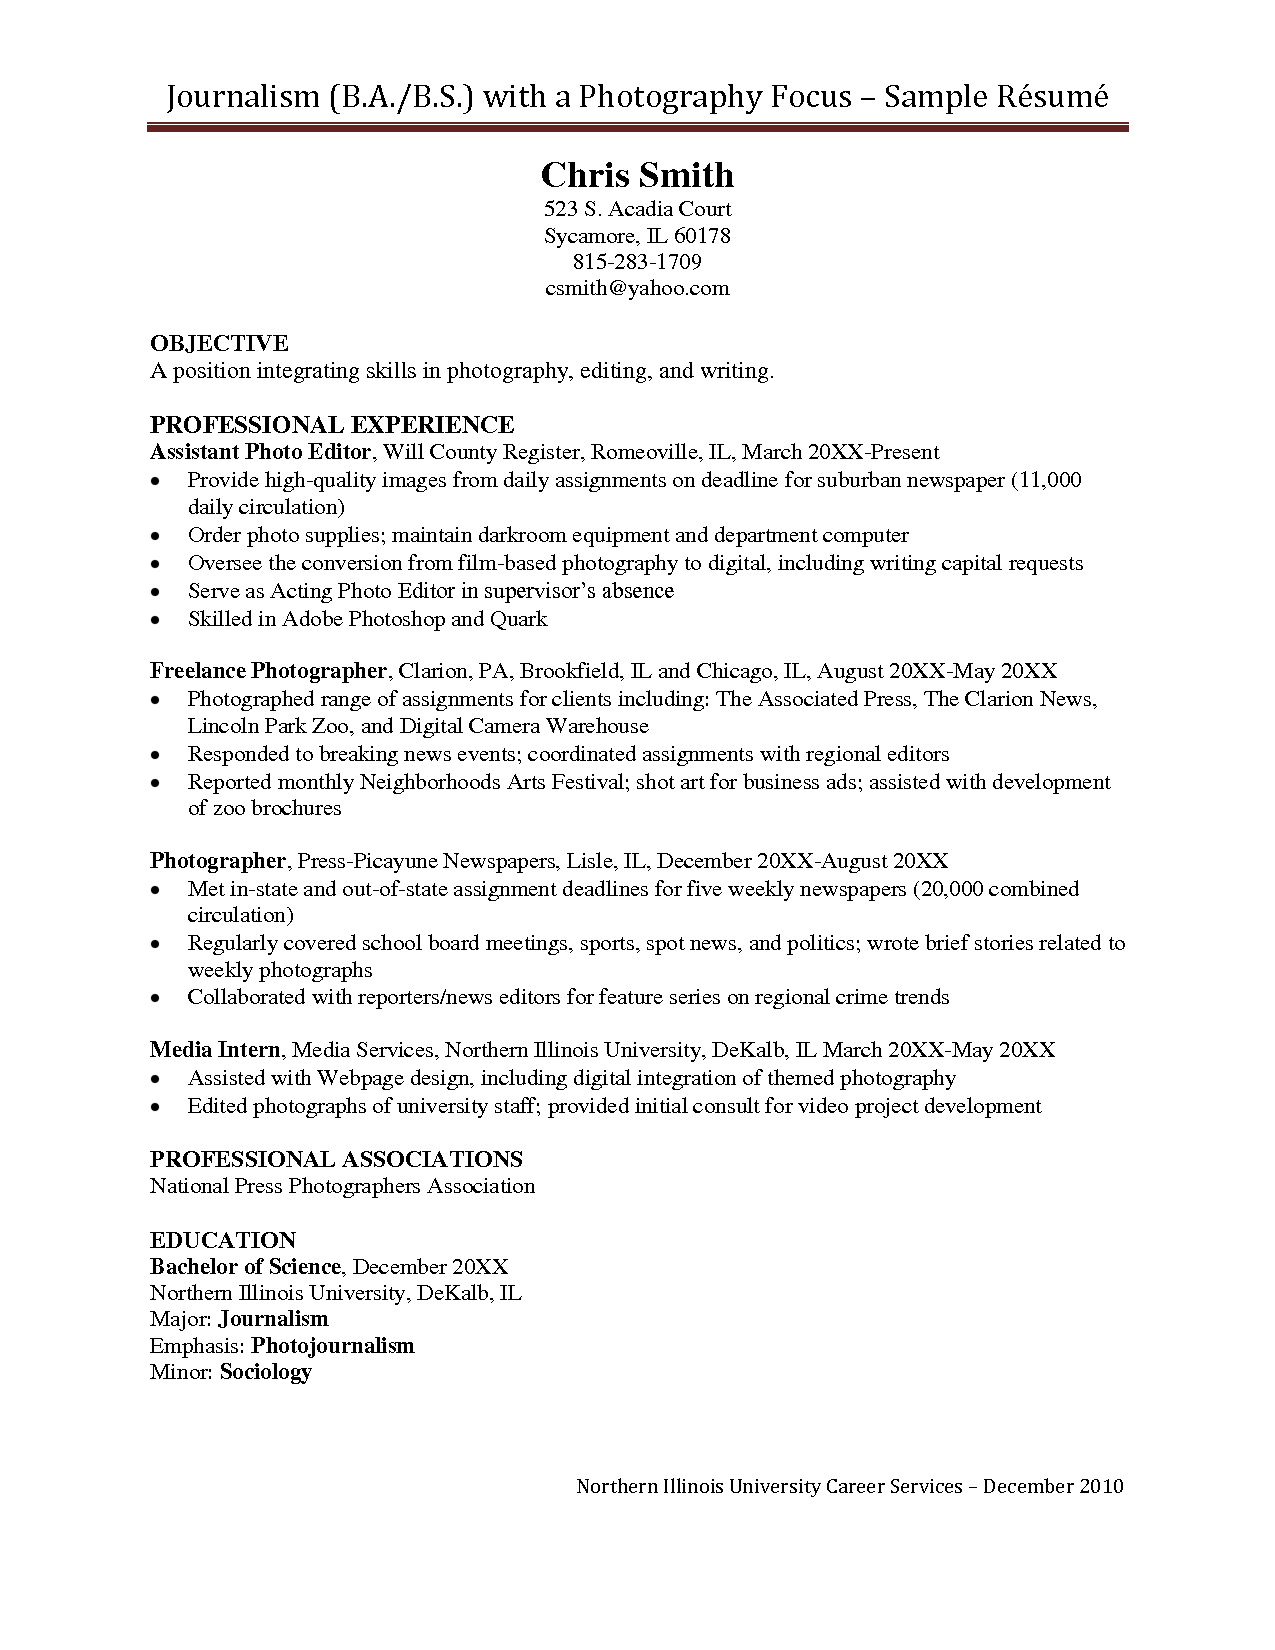 forensic photography resume